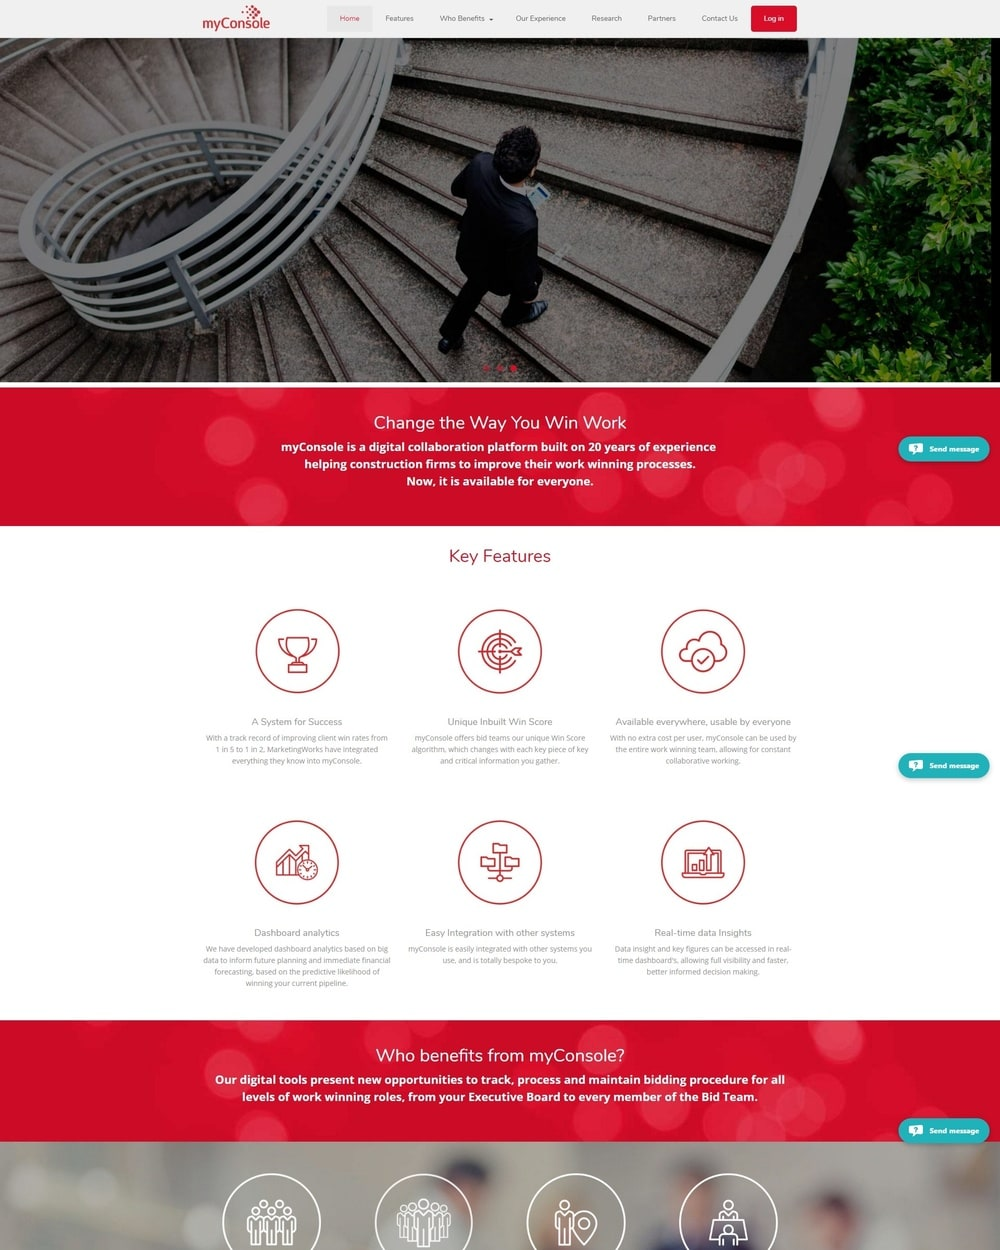 Work From Home Web Design Jobs Uk   100 Graphic Design Jobs From Home Uk Web